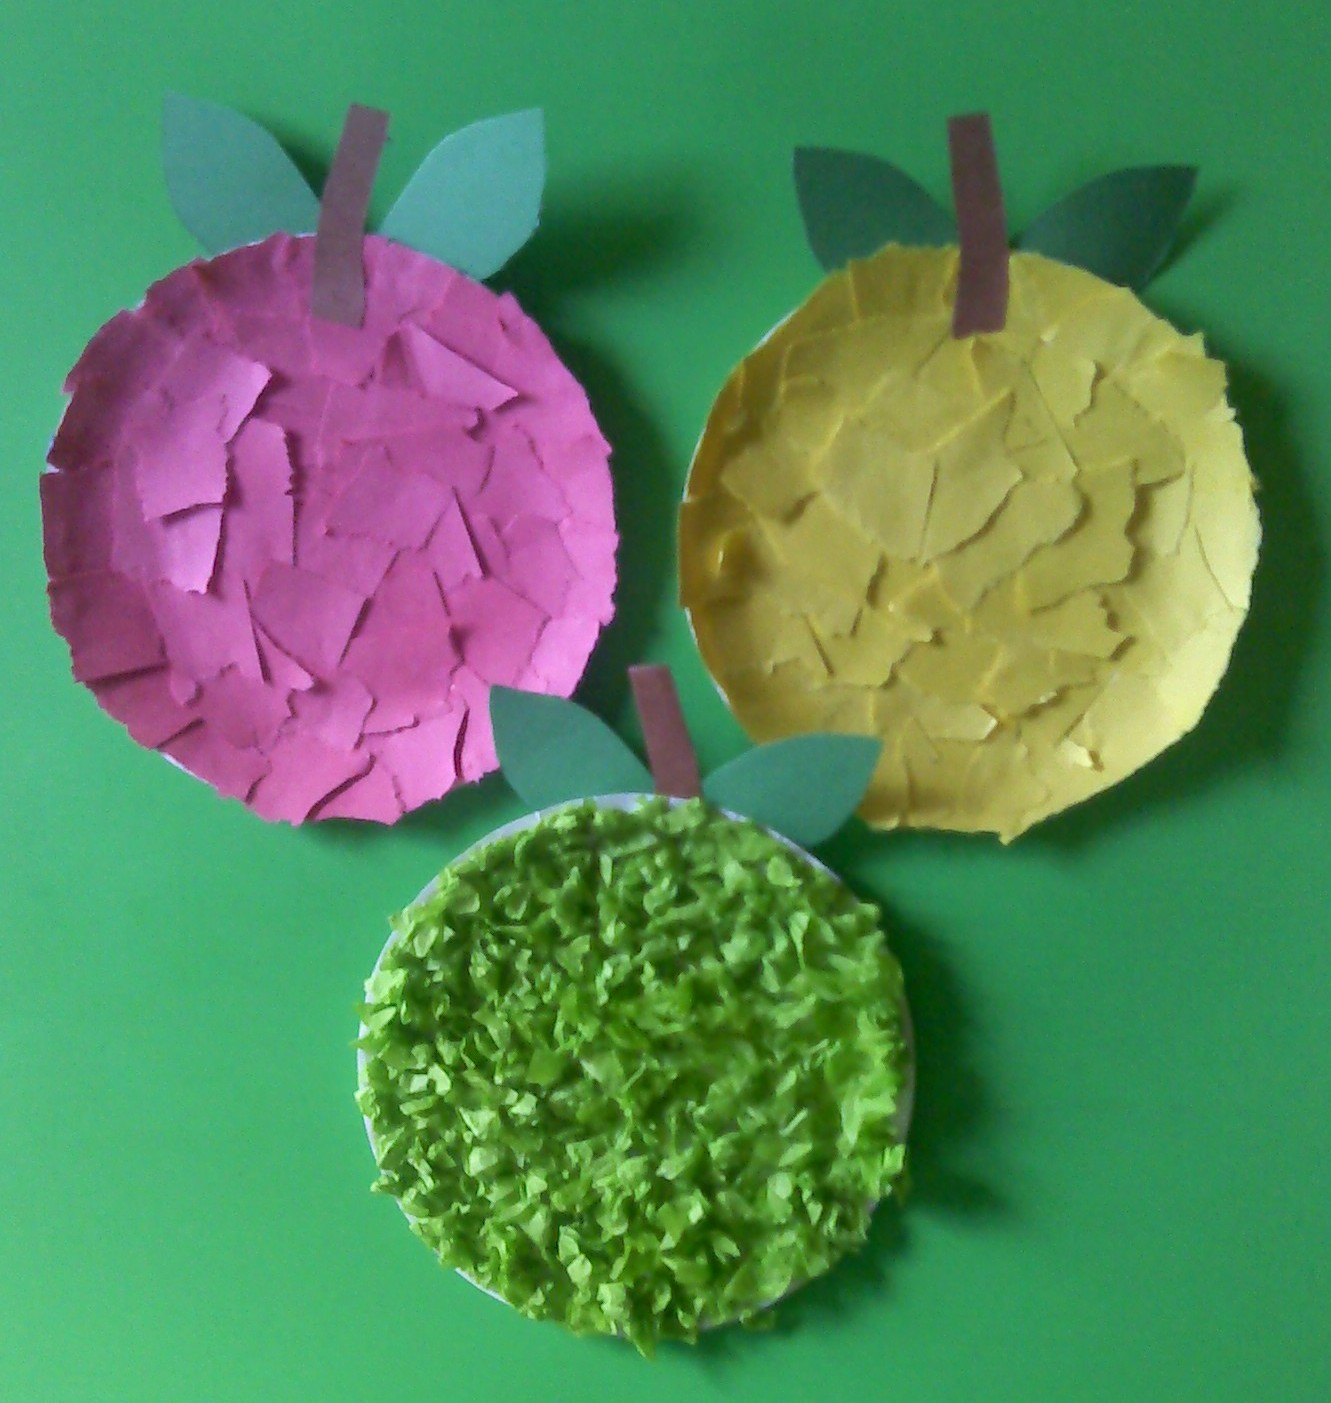 Tear fall colored construction paper into small pieces and glue - Use Small Paper Plates To Create These Simple Apples Tear Up Pieces Of Construction Paper And Glue Onto The Plate Or Cut Up Tissue Paper And Crumple Them